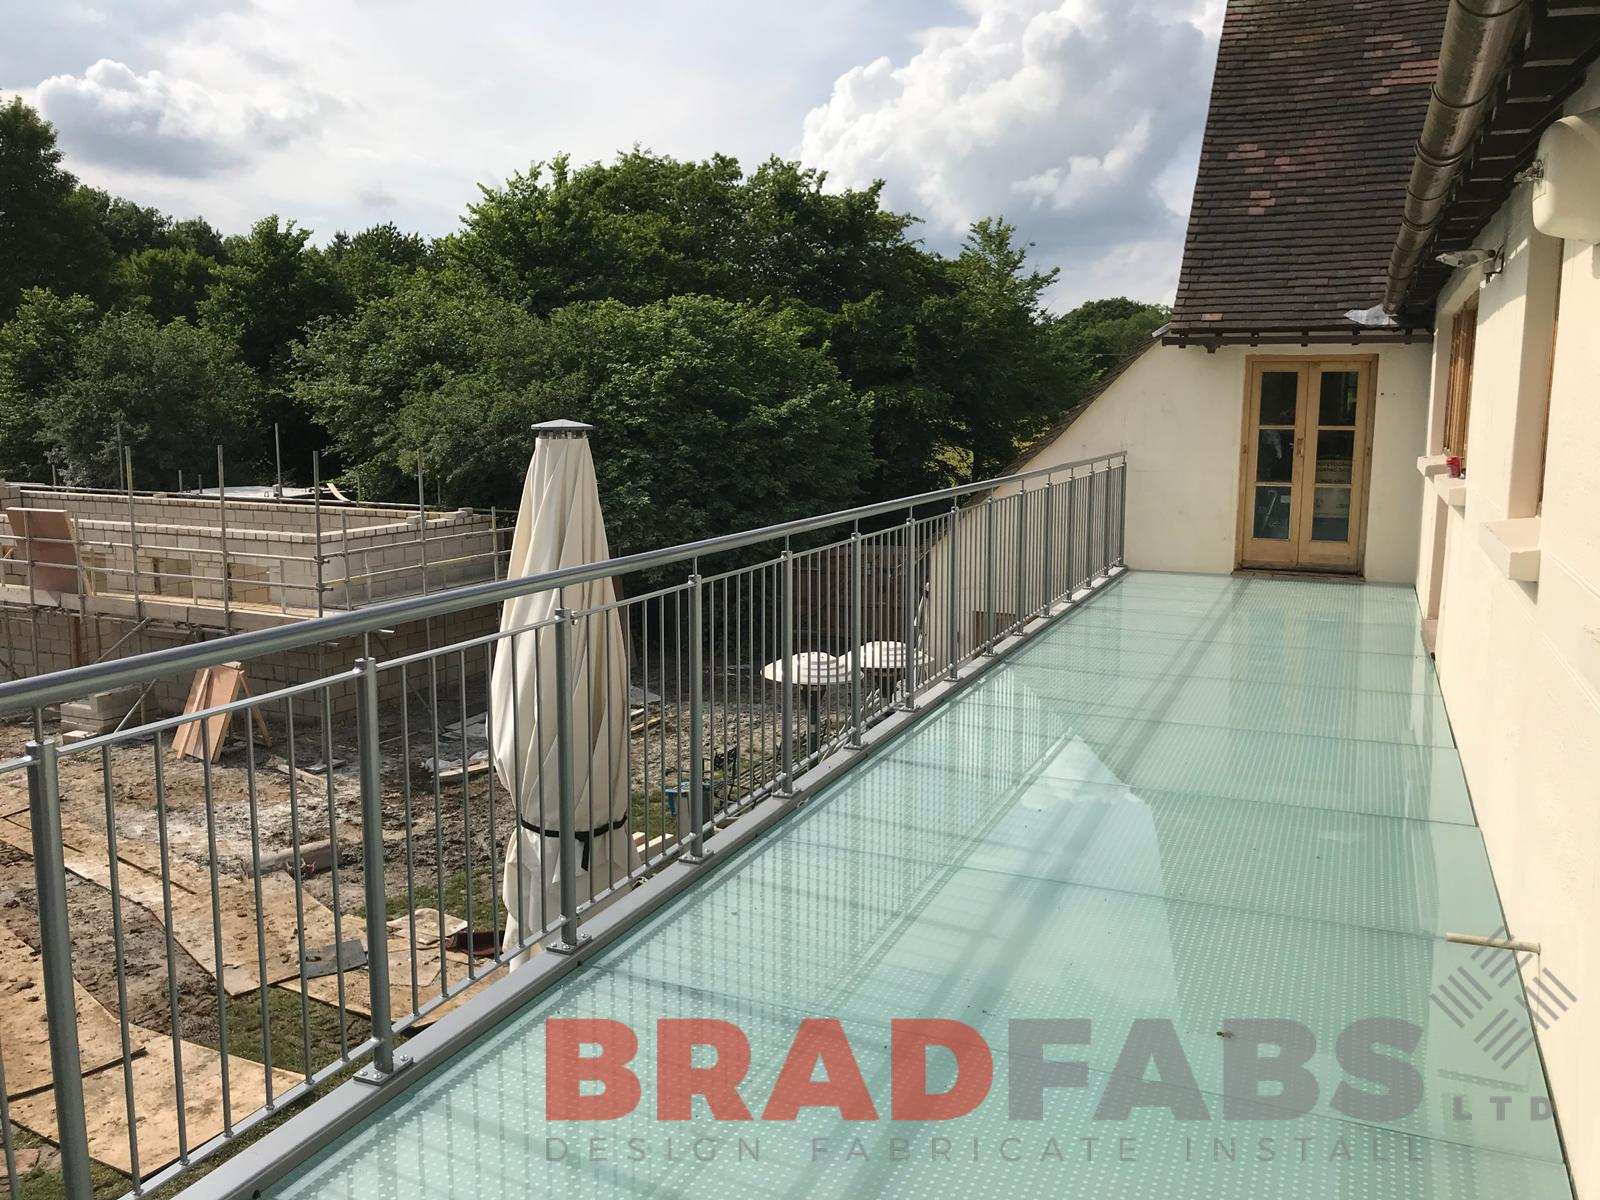 Glass floor on balcony with vertical bar balustrade